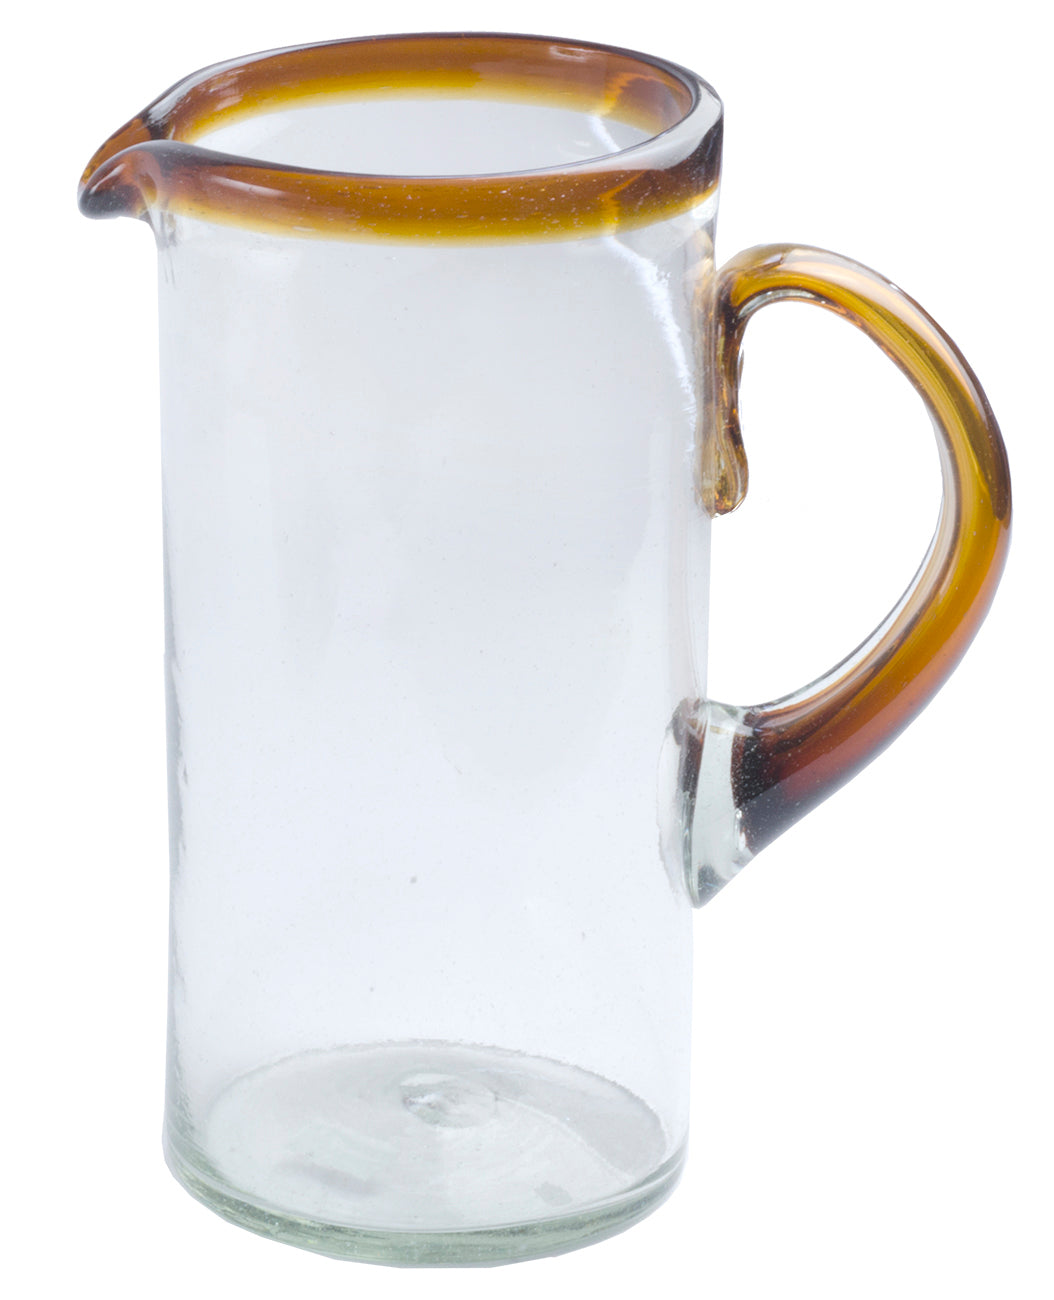 Orion Amber Rim 56 oz Pitcher - Orion's Table Mexican Glassware